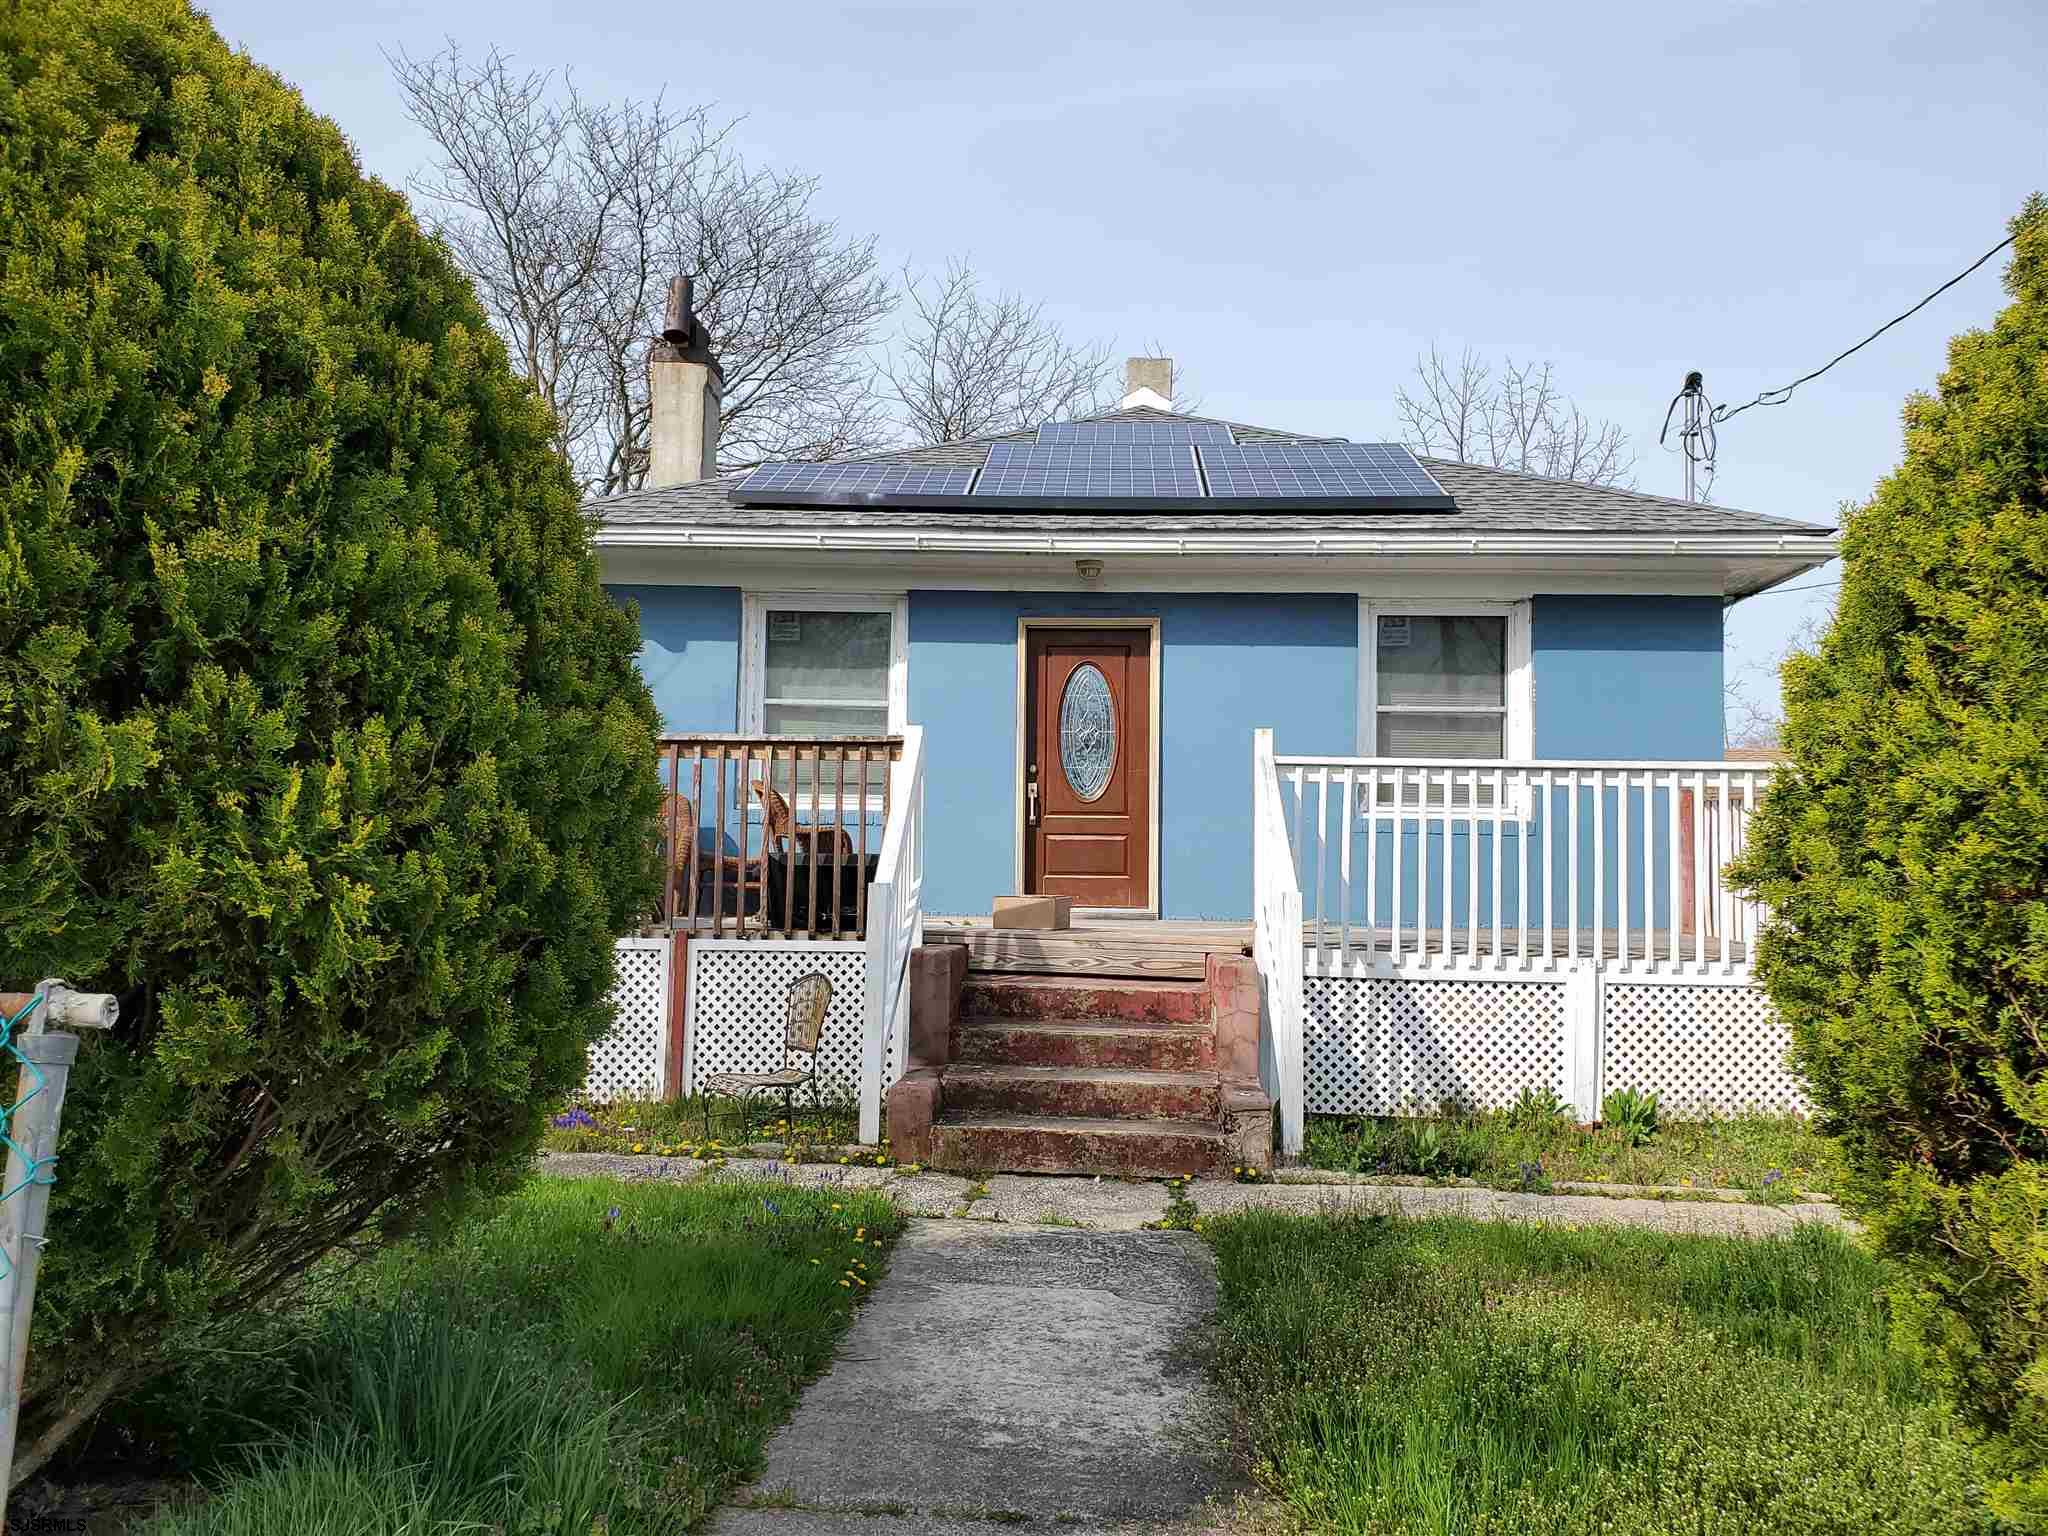 THIS RANCH HAS 2BD, POSSIBLE THREE, 2BATHS,  GAS HEAT, CENTRAL AIR, SOLAR PANELS, POSSIBLE IN-LAW SU